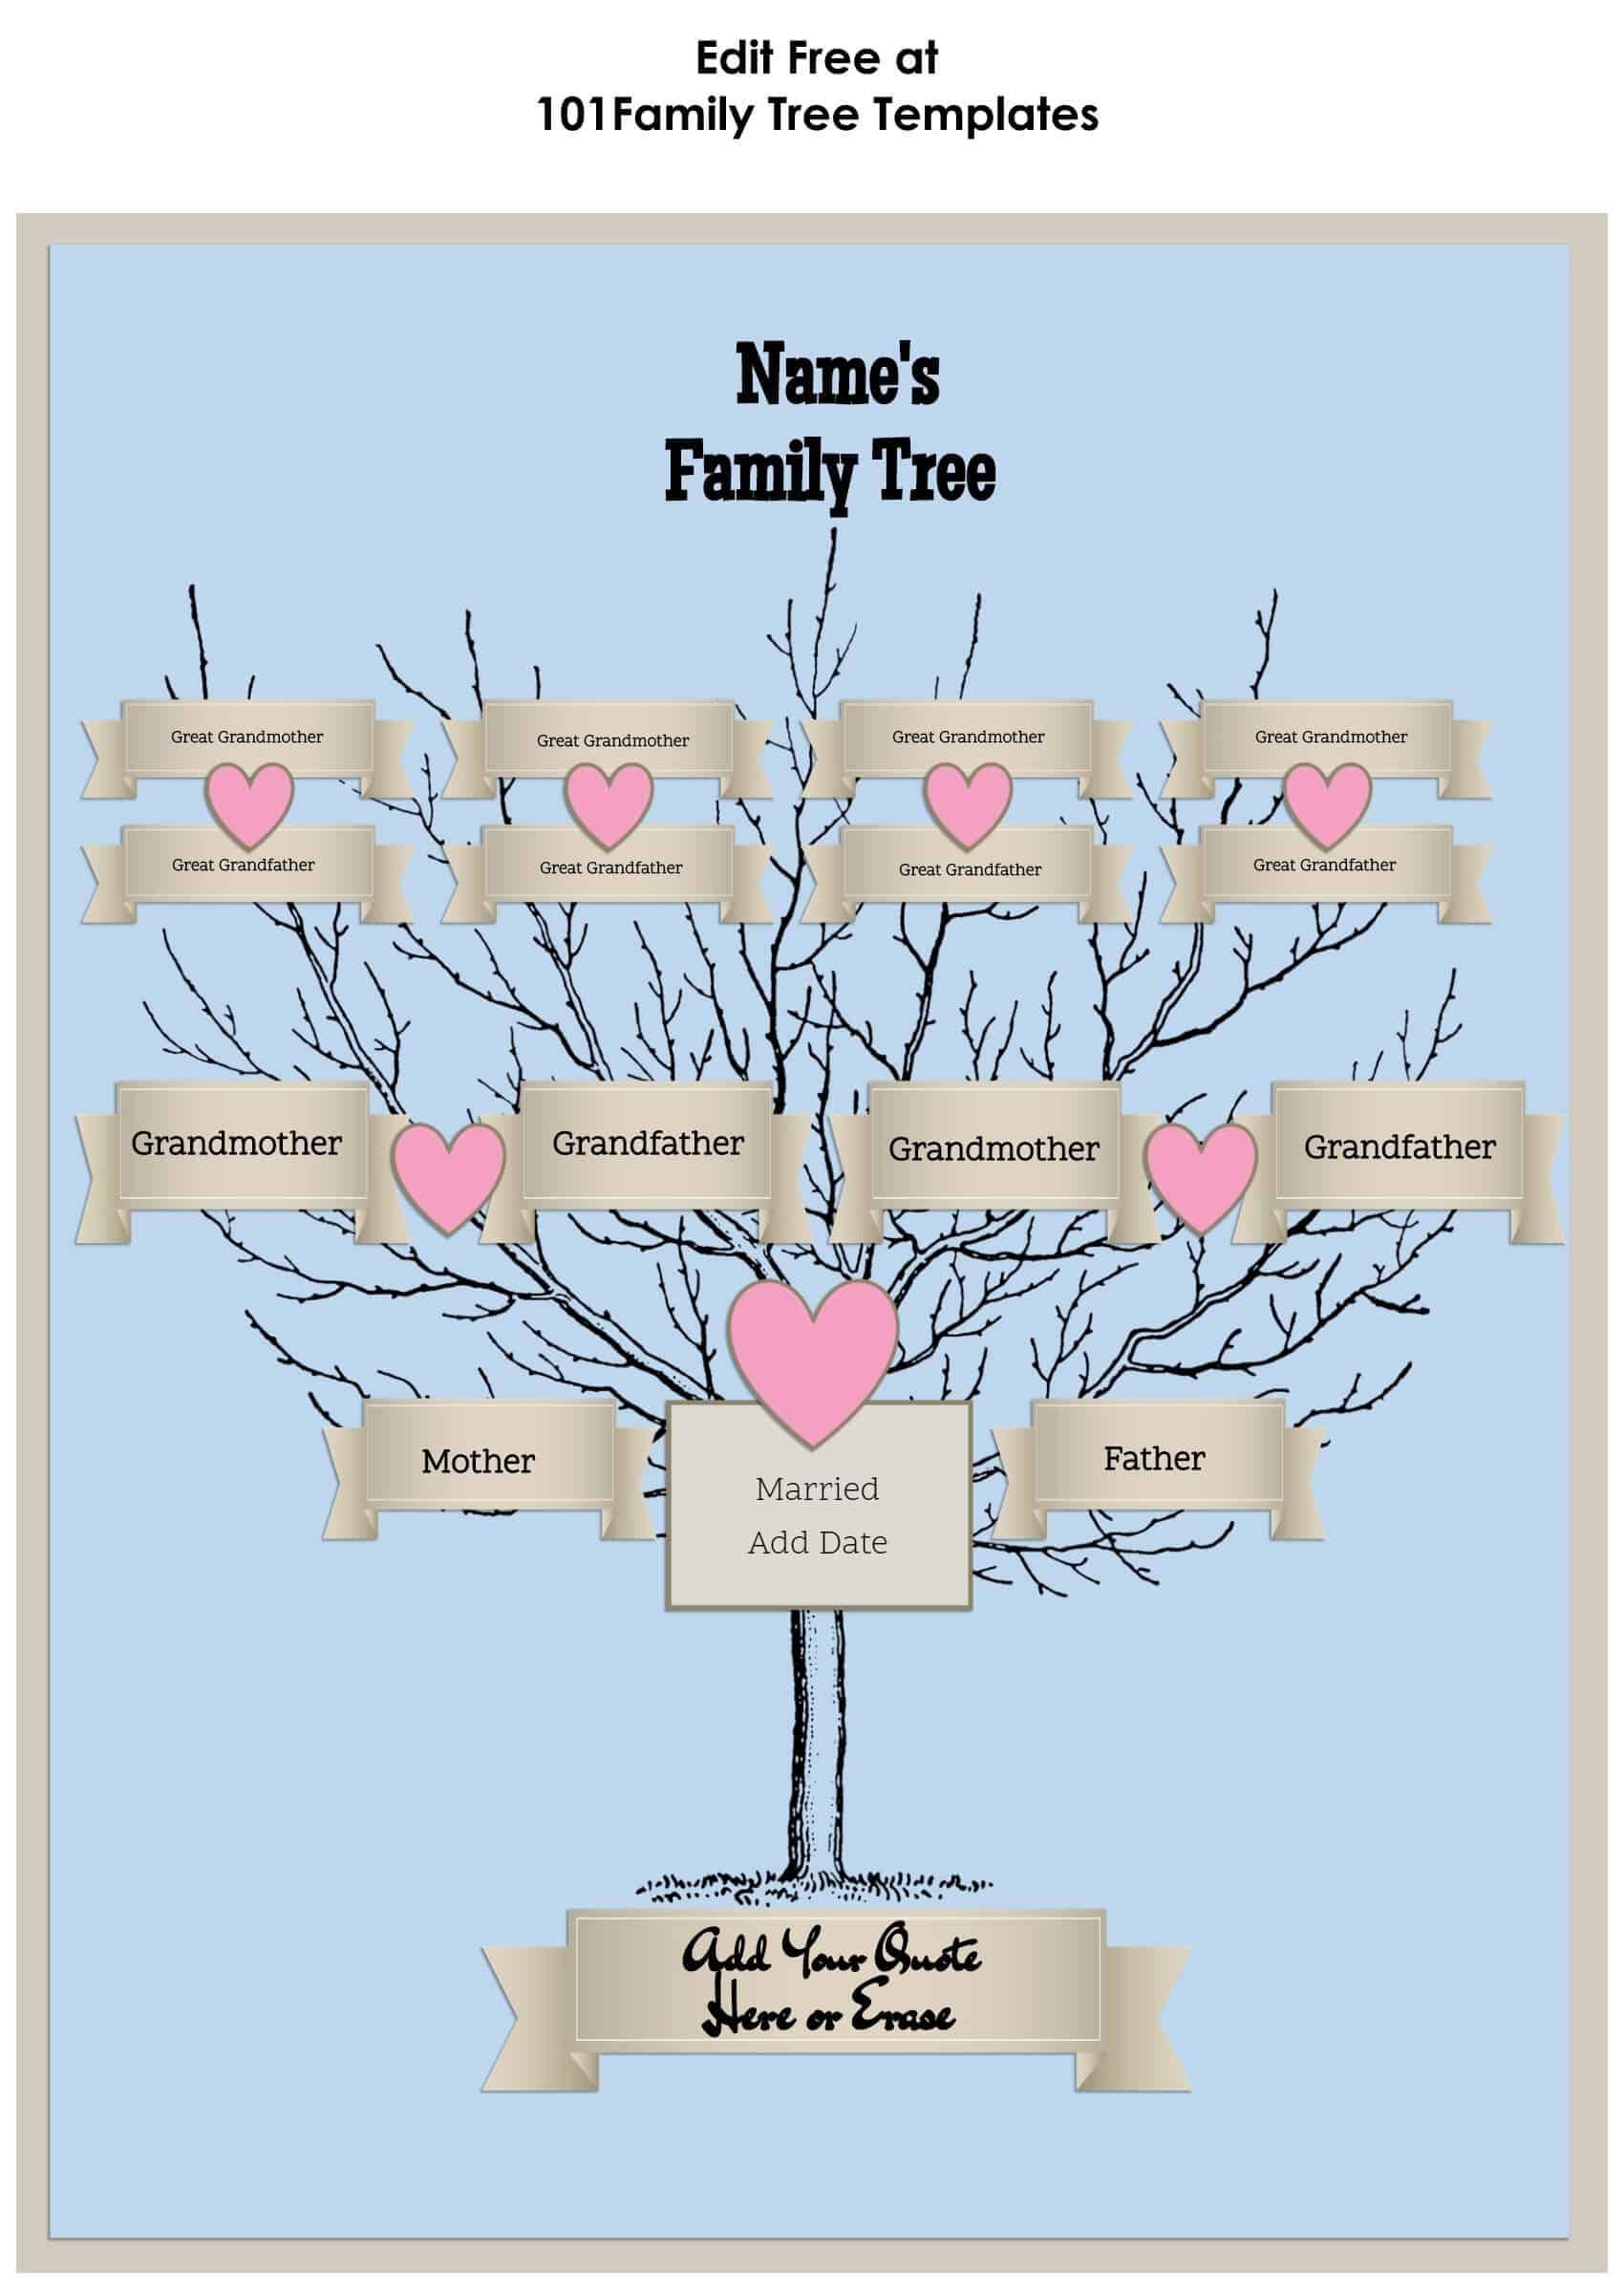 3 Generation Family Tree Generator | All Templates Are Free Throughout 3 Generation Family Tree Template Word